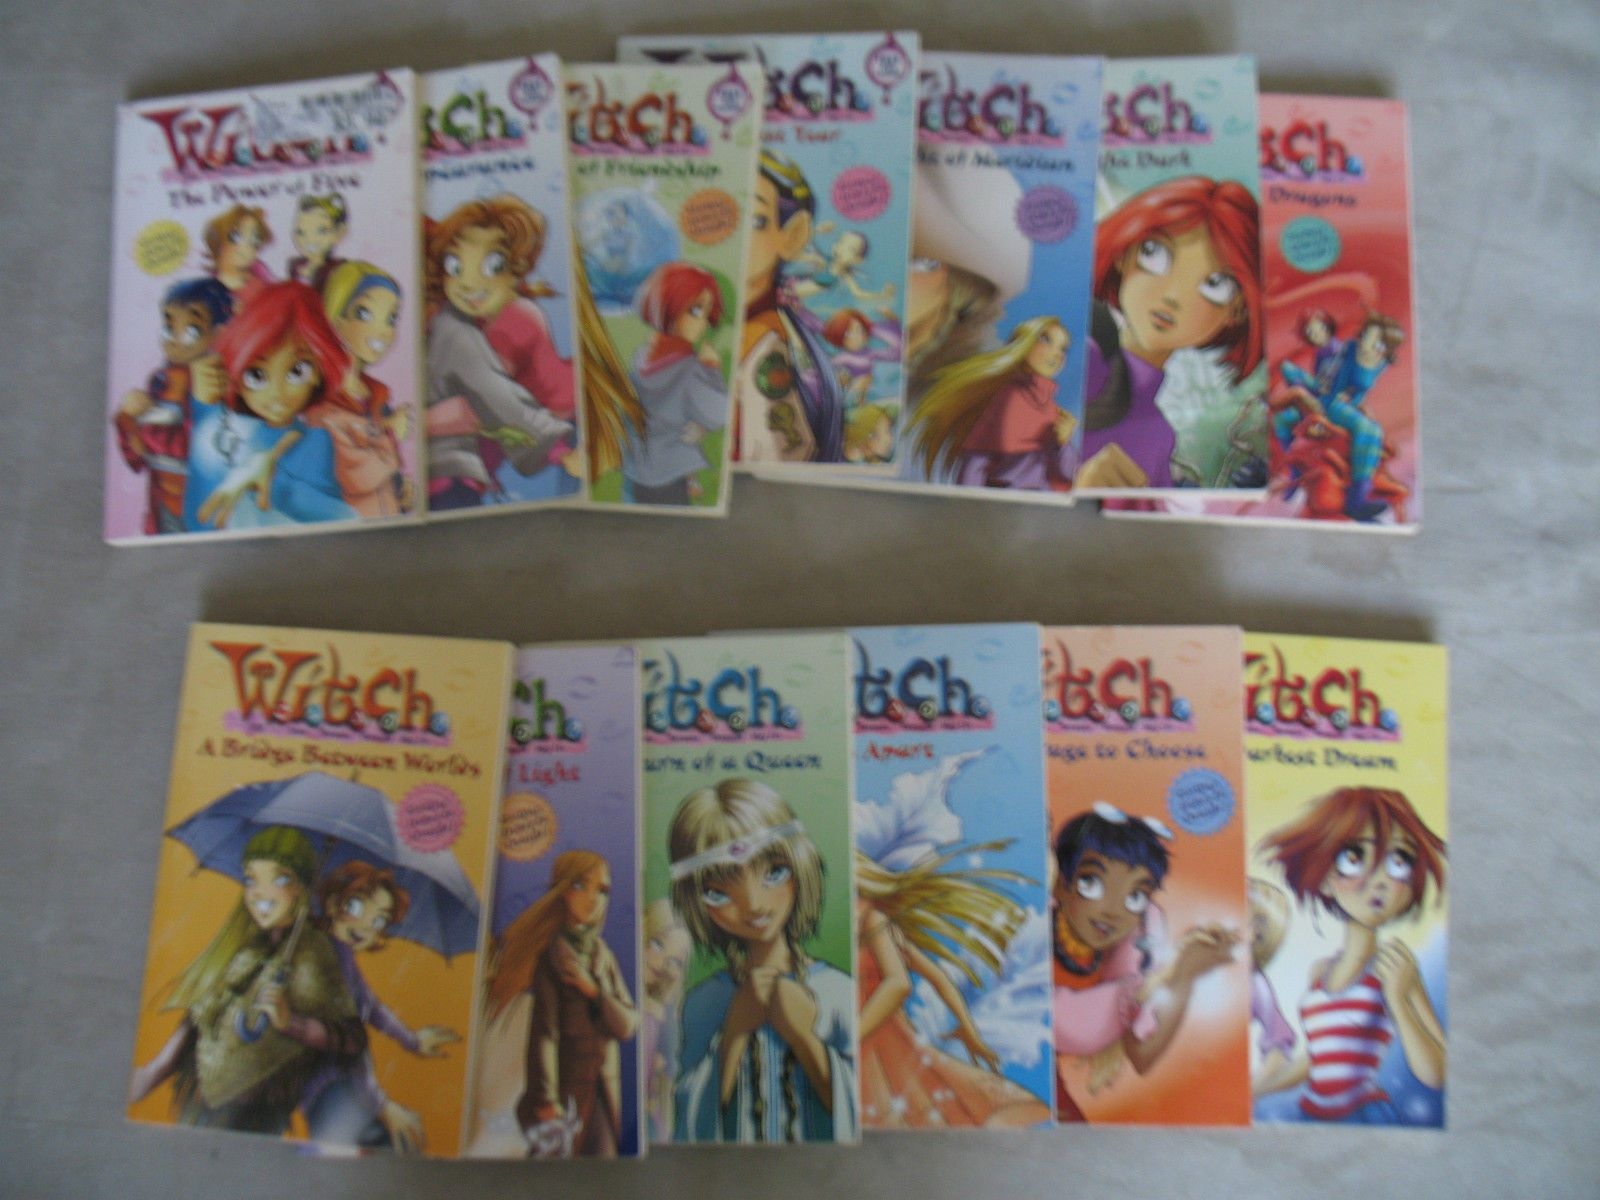 http://www.ebay.com/itm/W-I-T-C-H-series-lot-of-13-books-/261508736503?pt=US_Childrens_Books $22 Shipping $14